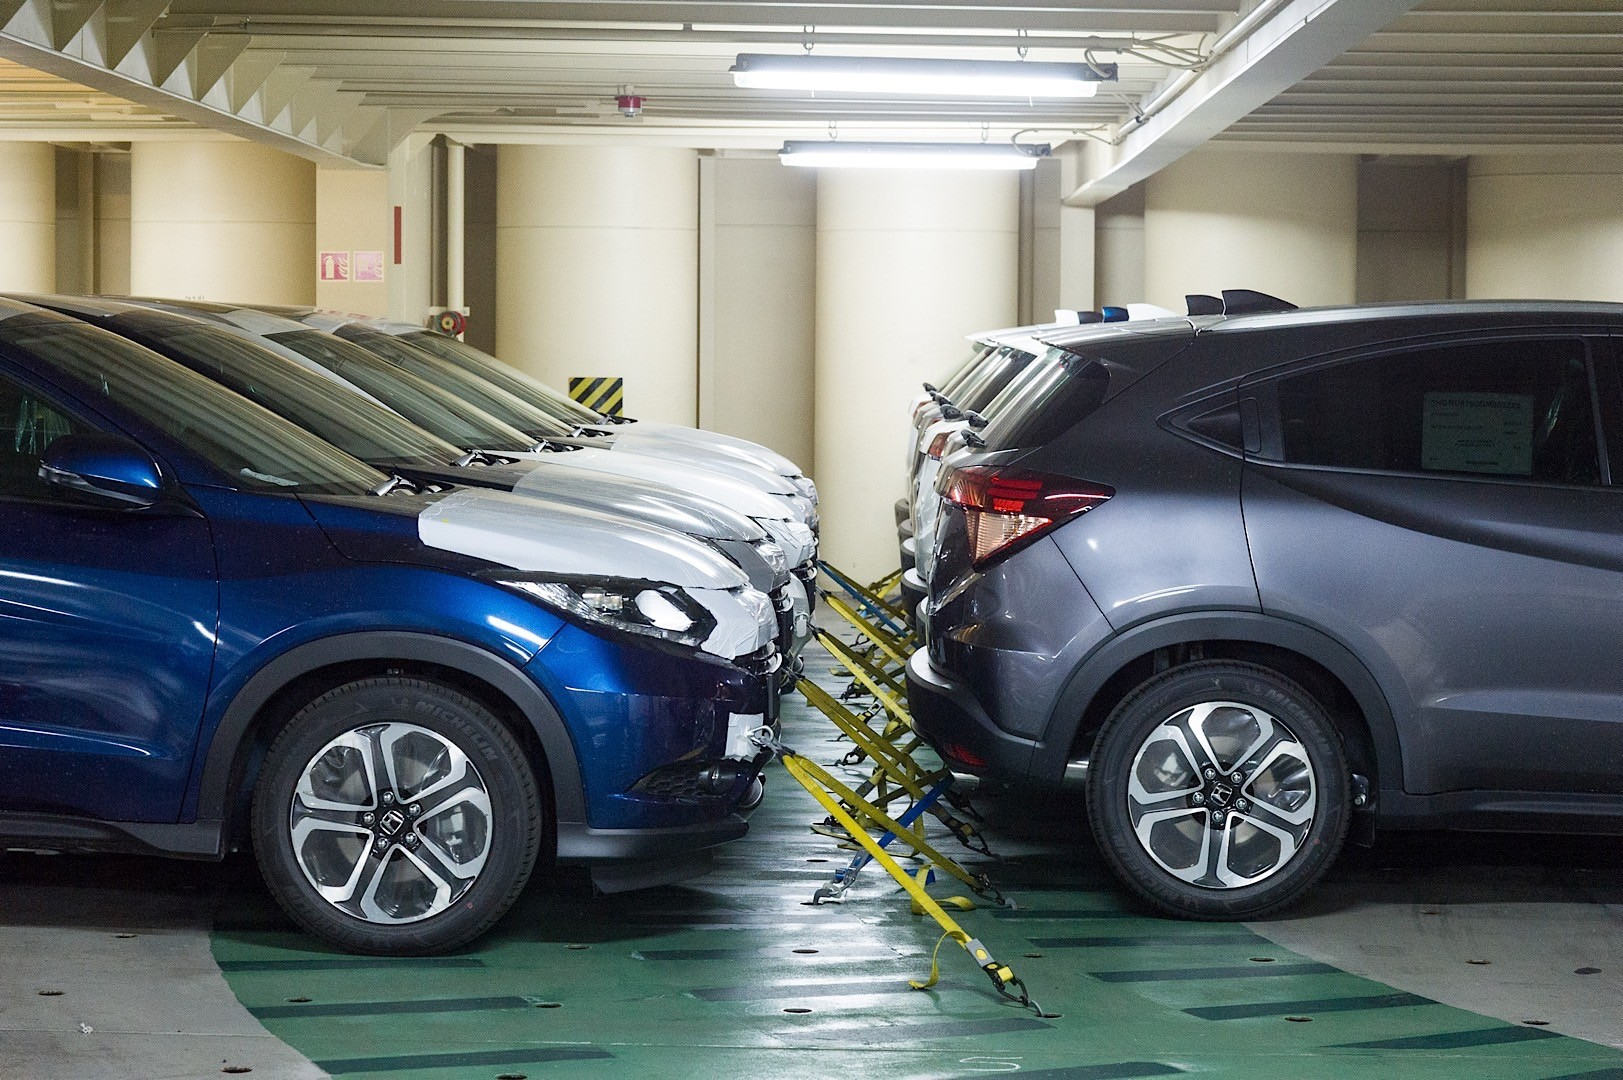 2015-honda-hr-v-literally-reaches-uk-shores-350-orders-have-been-already-placed_3.jpg